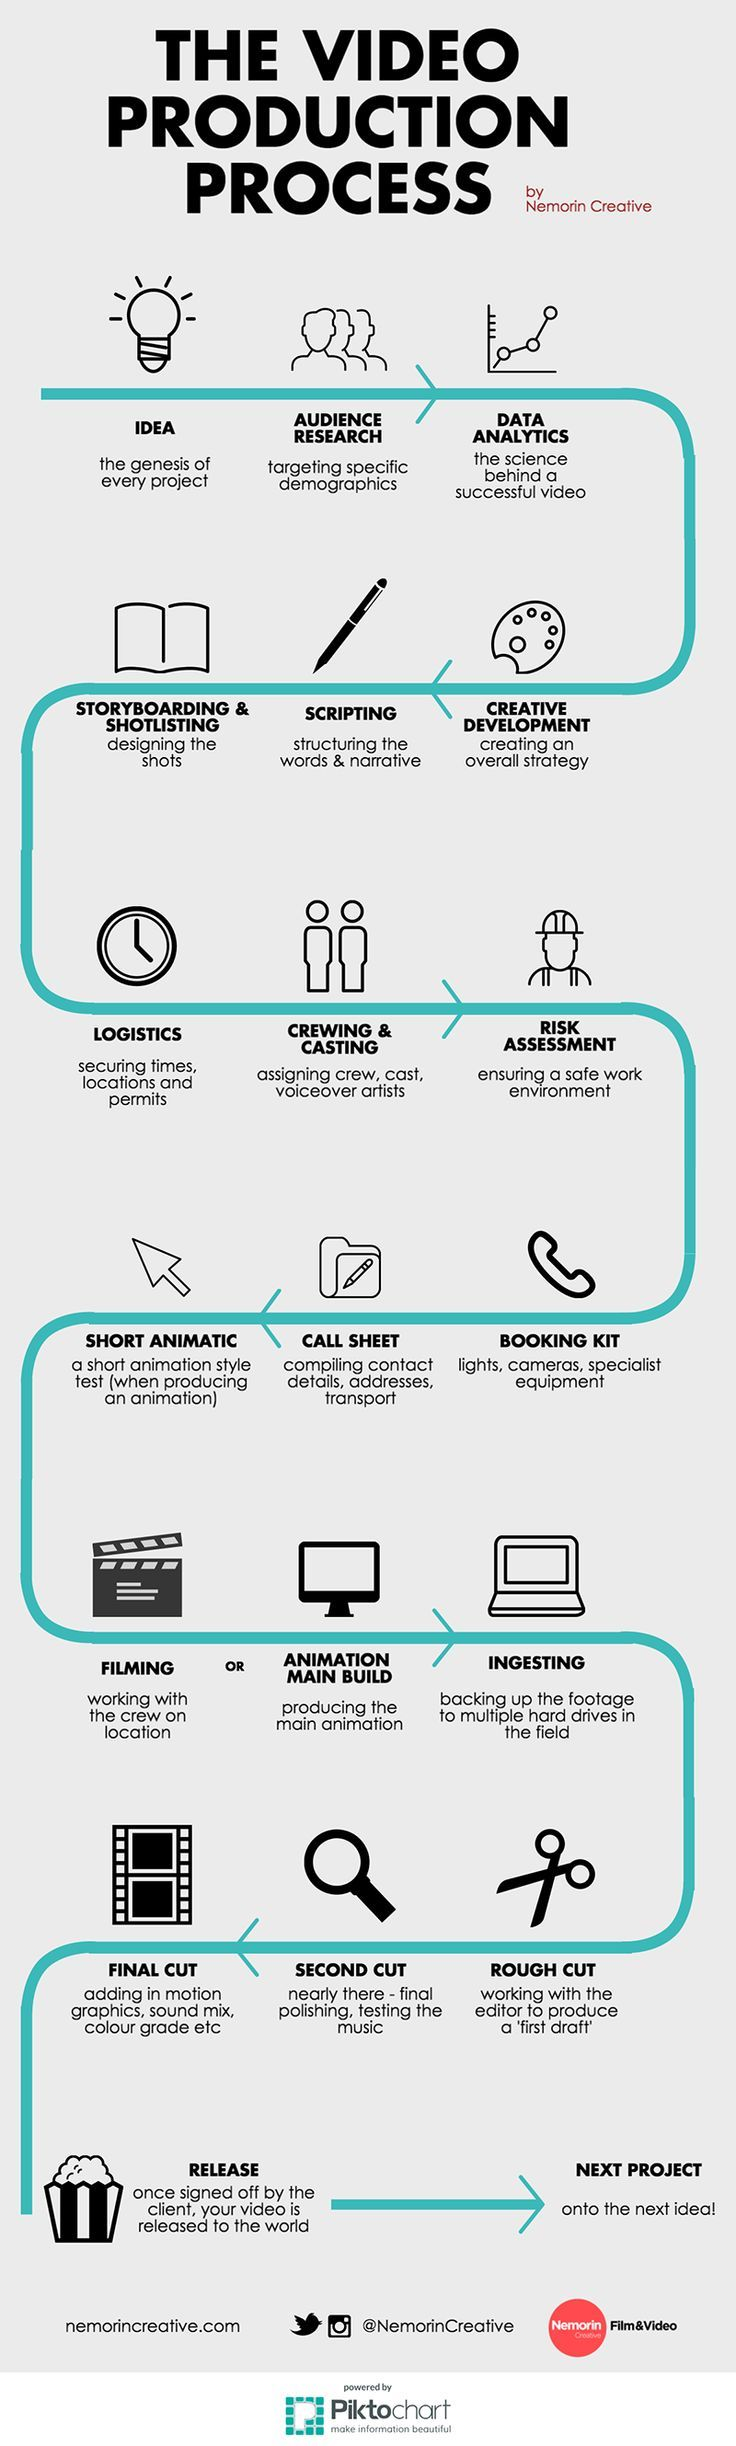 The Video Production Process Infographic. If you like UX, design, or design thinking, check out theuxblog.com